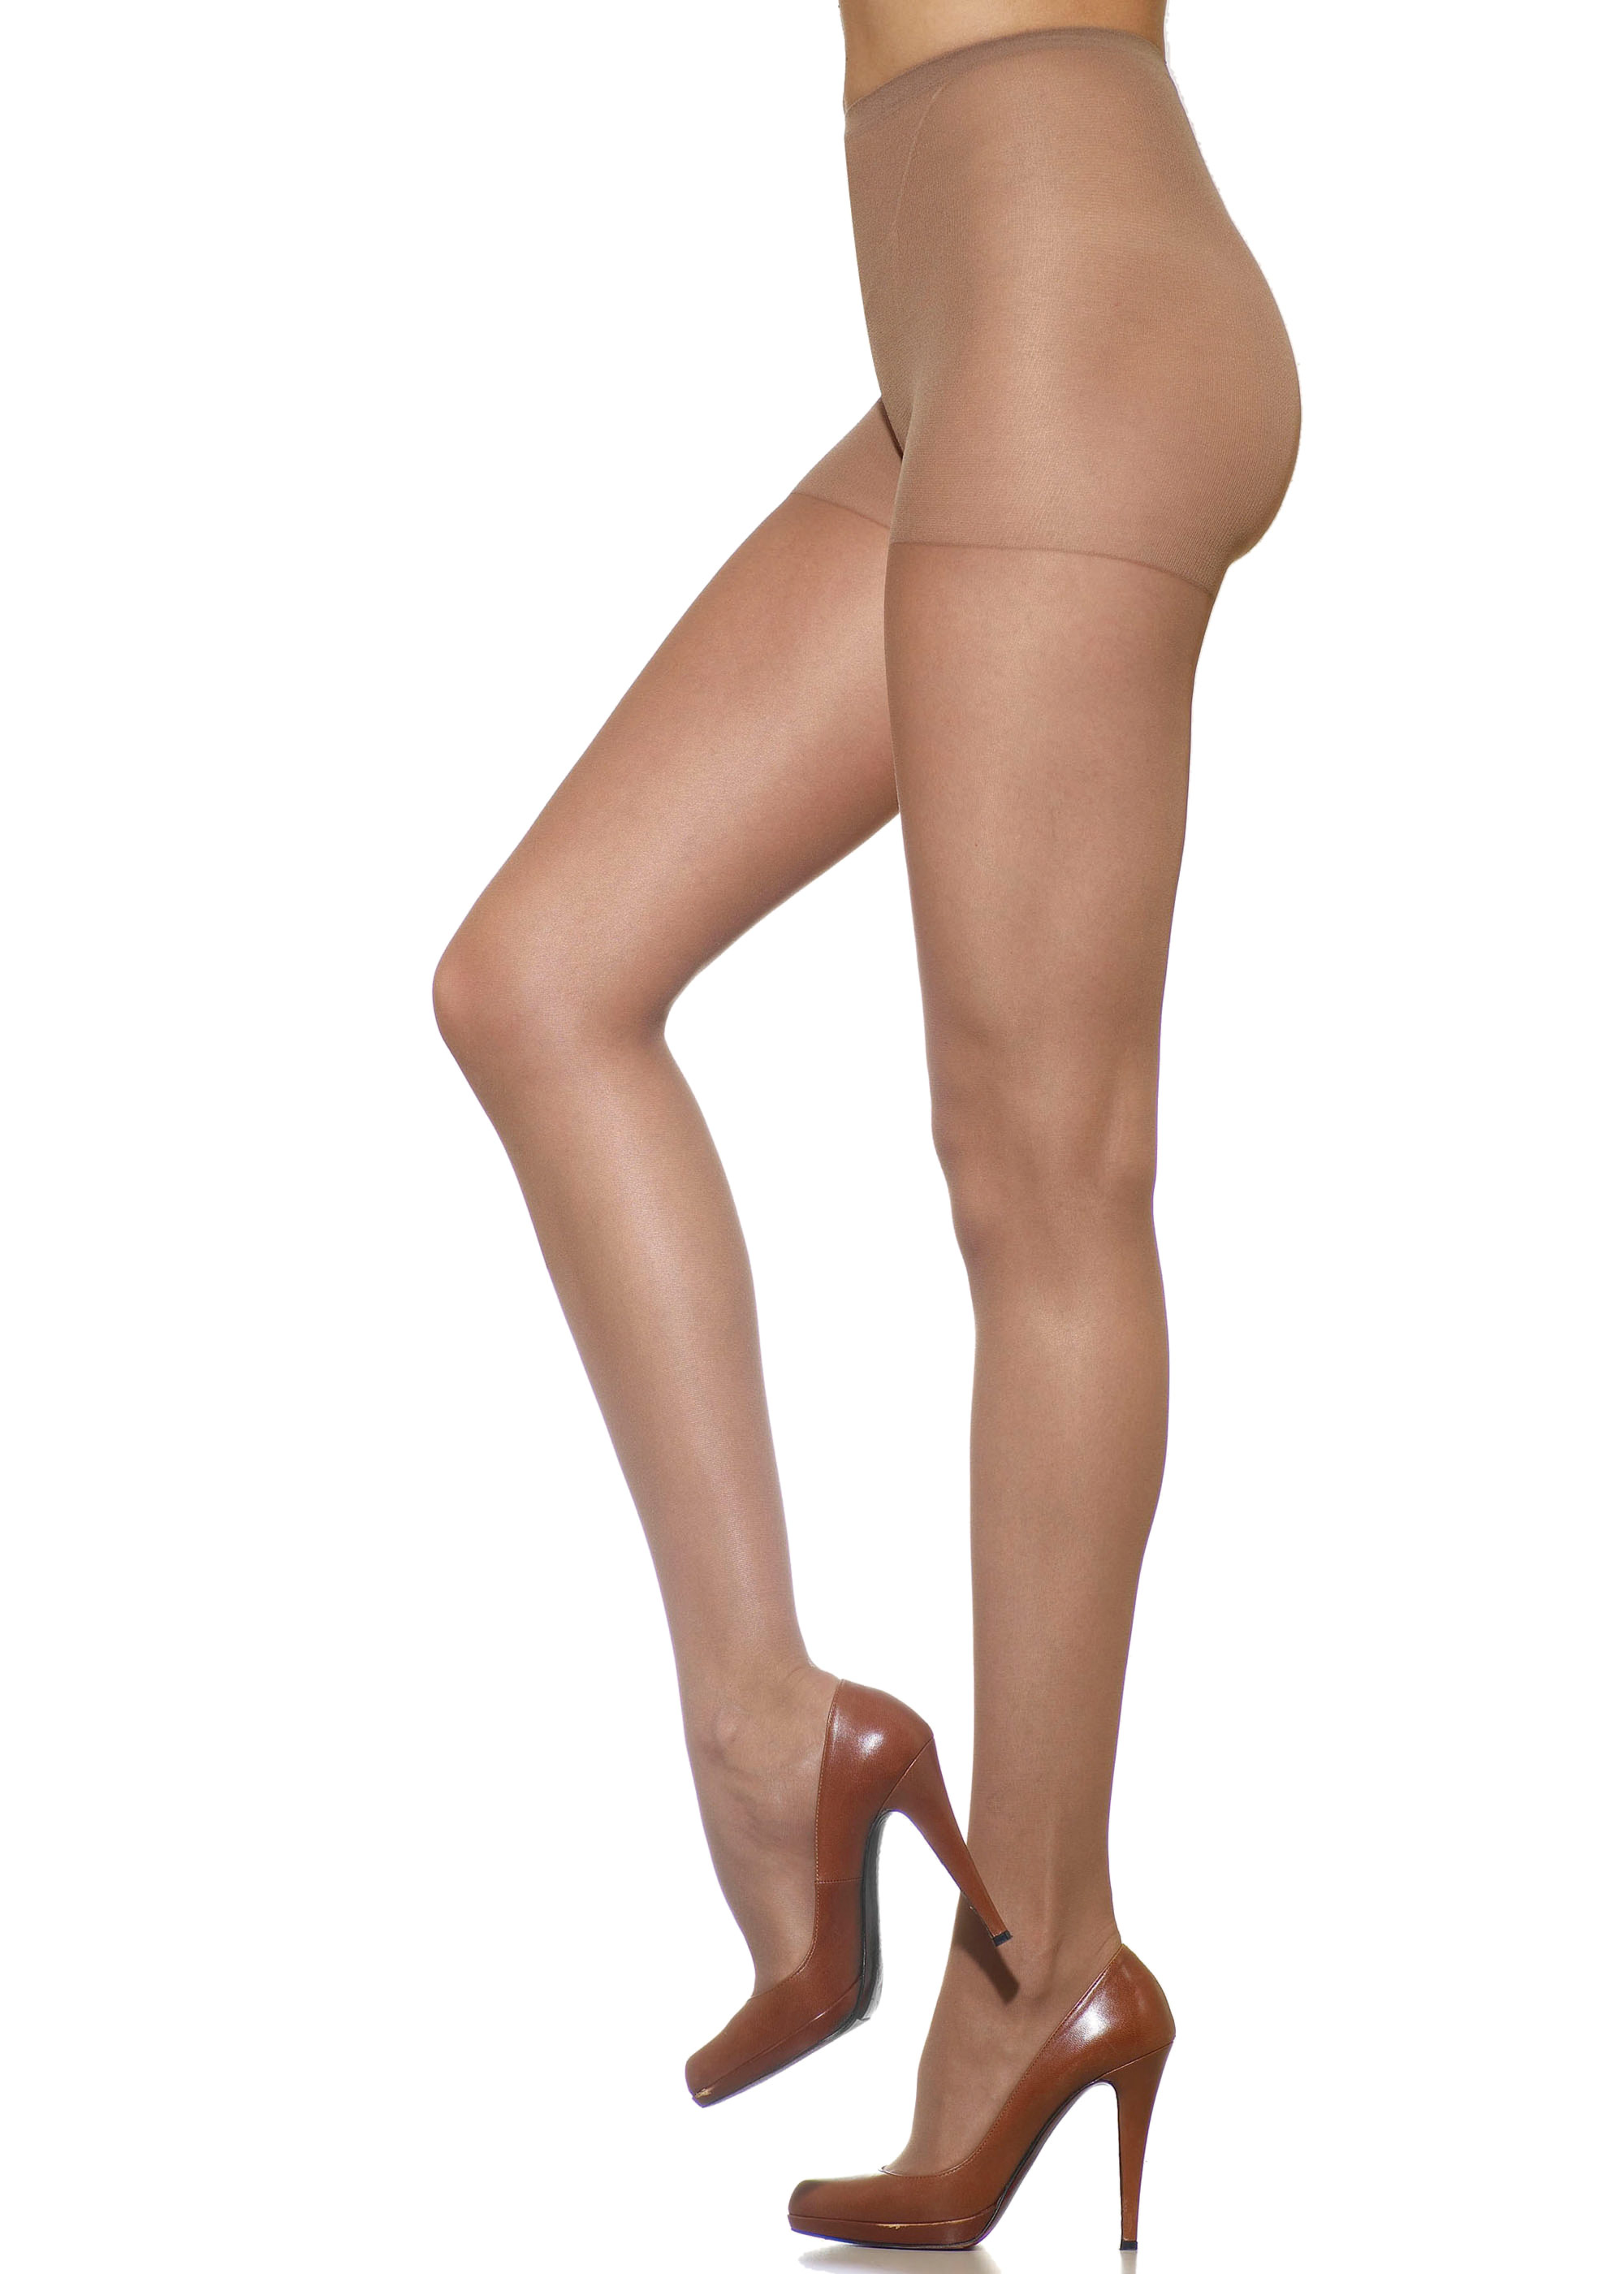 300943ffe39 Silkies TLC Total Leg Control Support Pantyhose